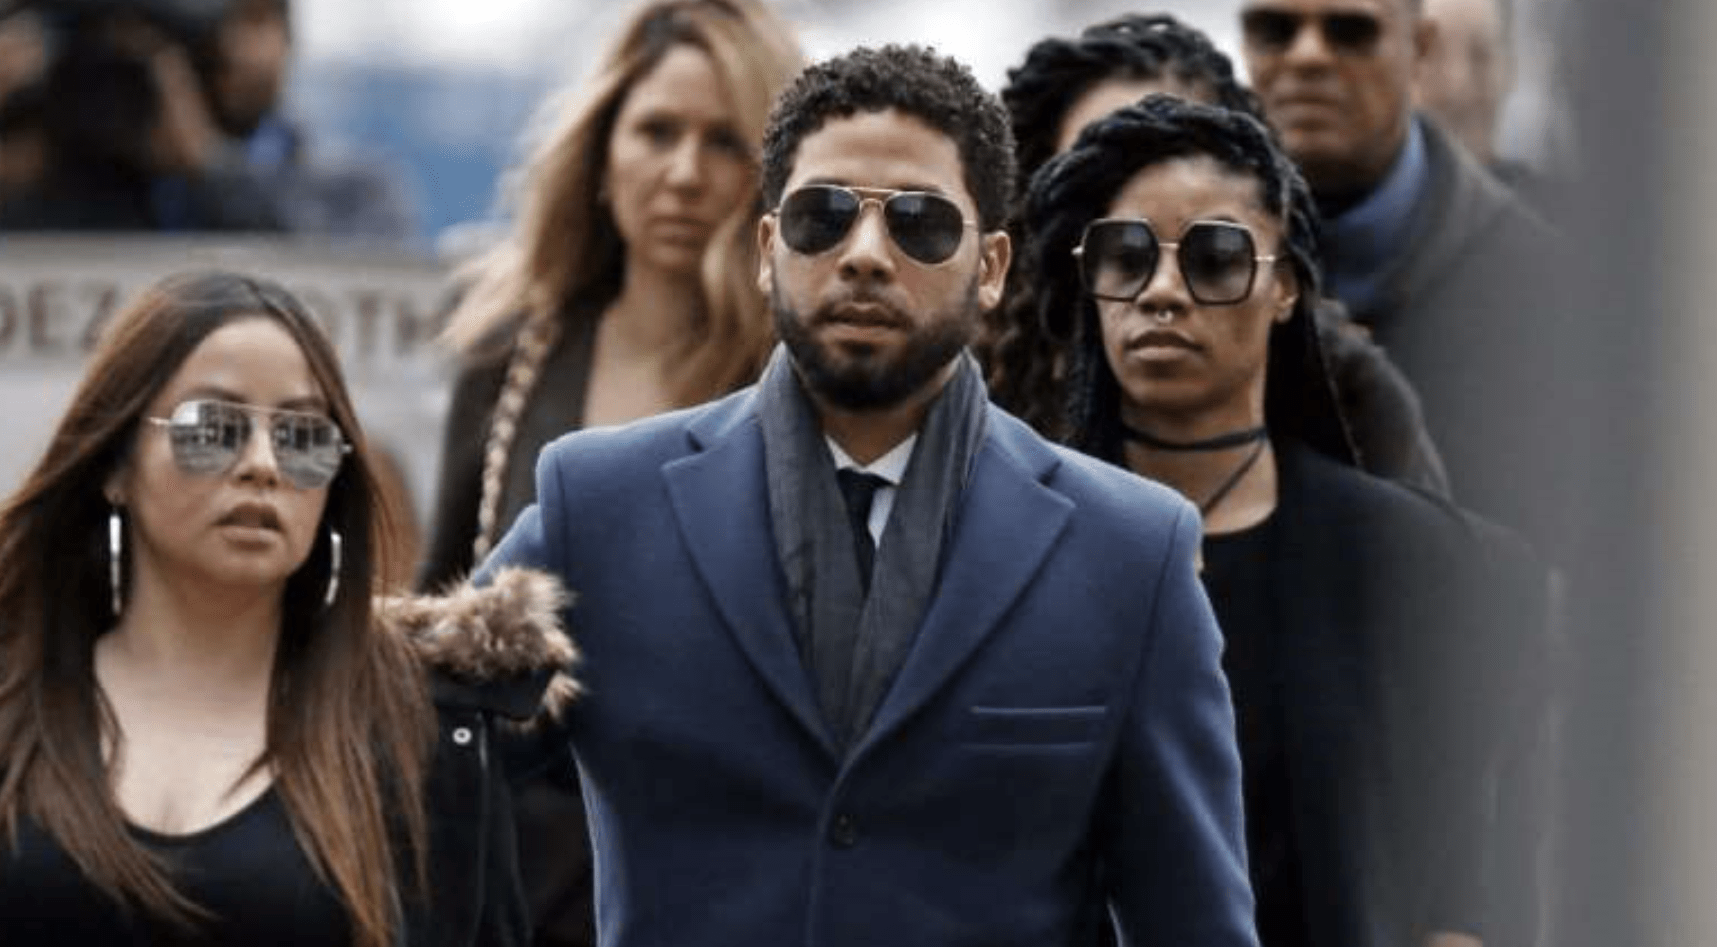 Actor Jussie Smollett Indicted On New Charges Related To Hate Crime Hoax